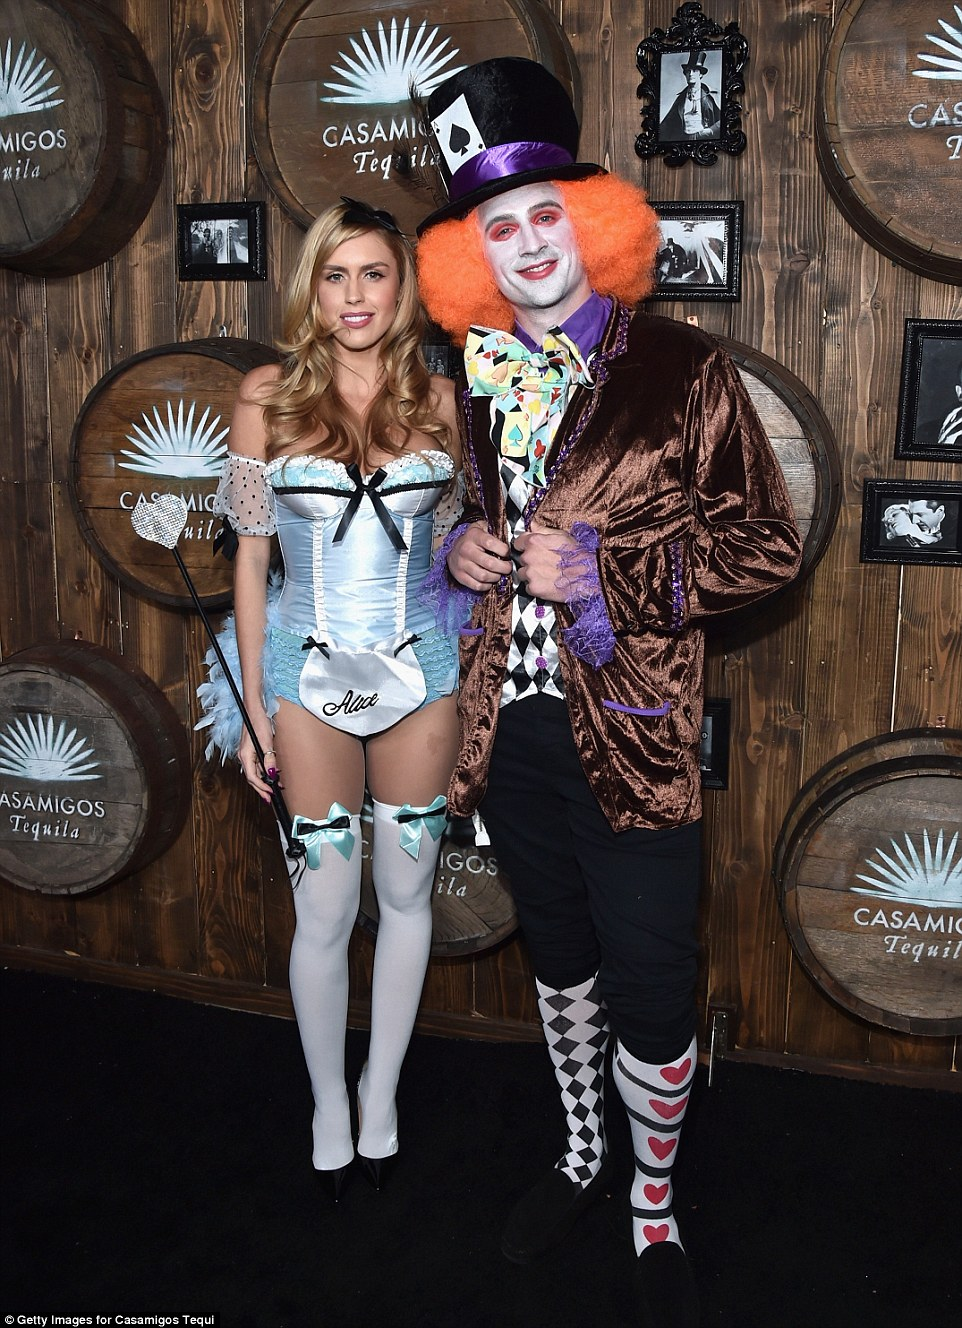 Olympian Ryan Lochte and his fiancee Kayla Rae Reid wore coordinating Alice in Wonderland costumes on Friday